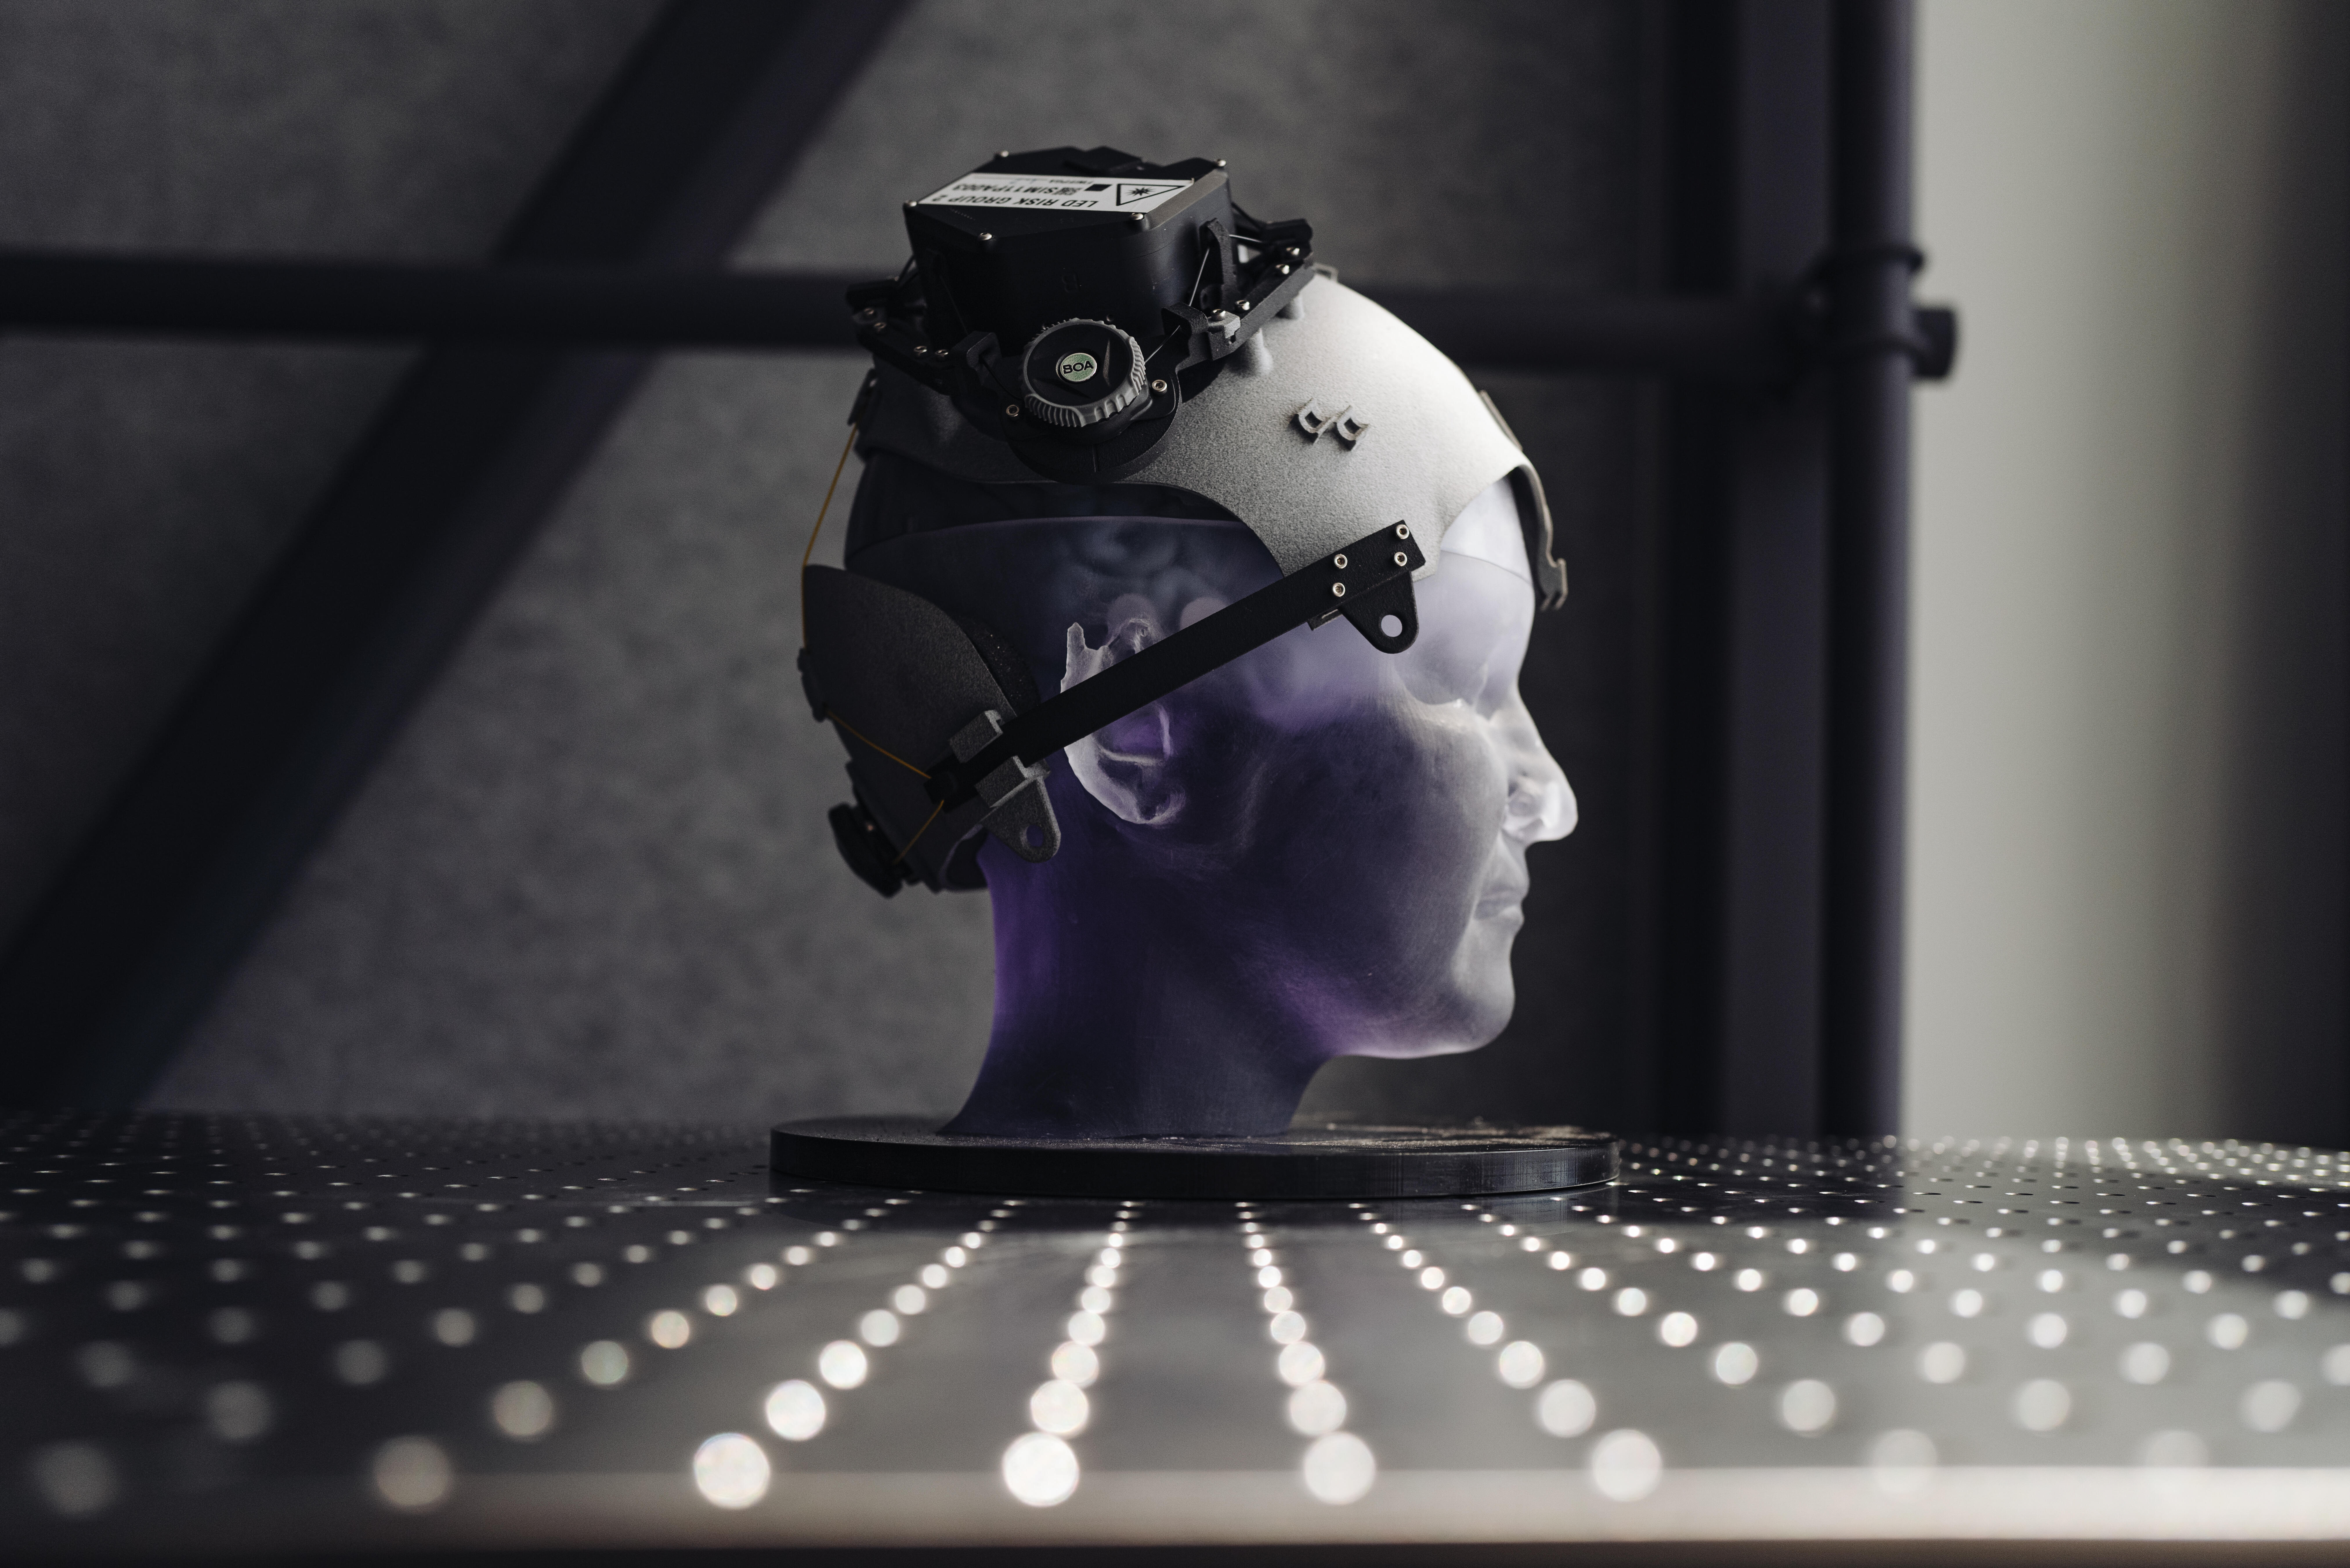 frlr-head-mounted-bci-research-prototype